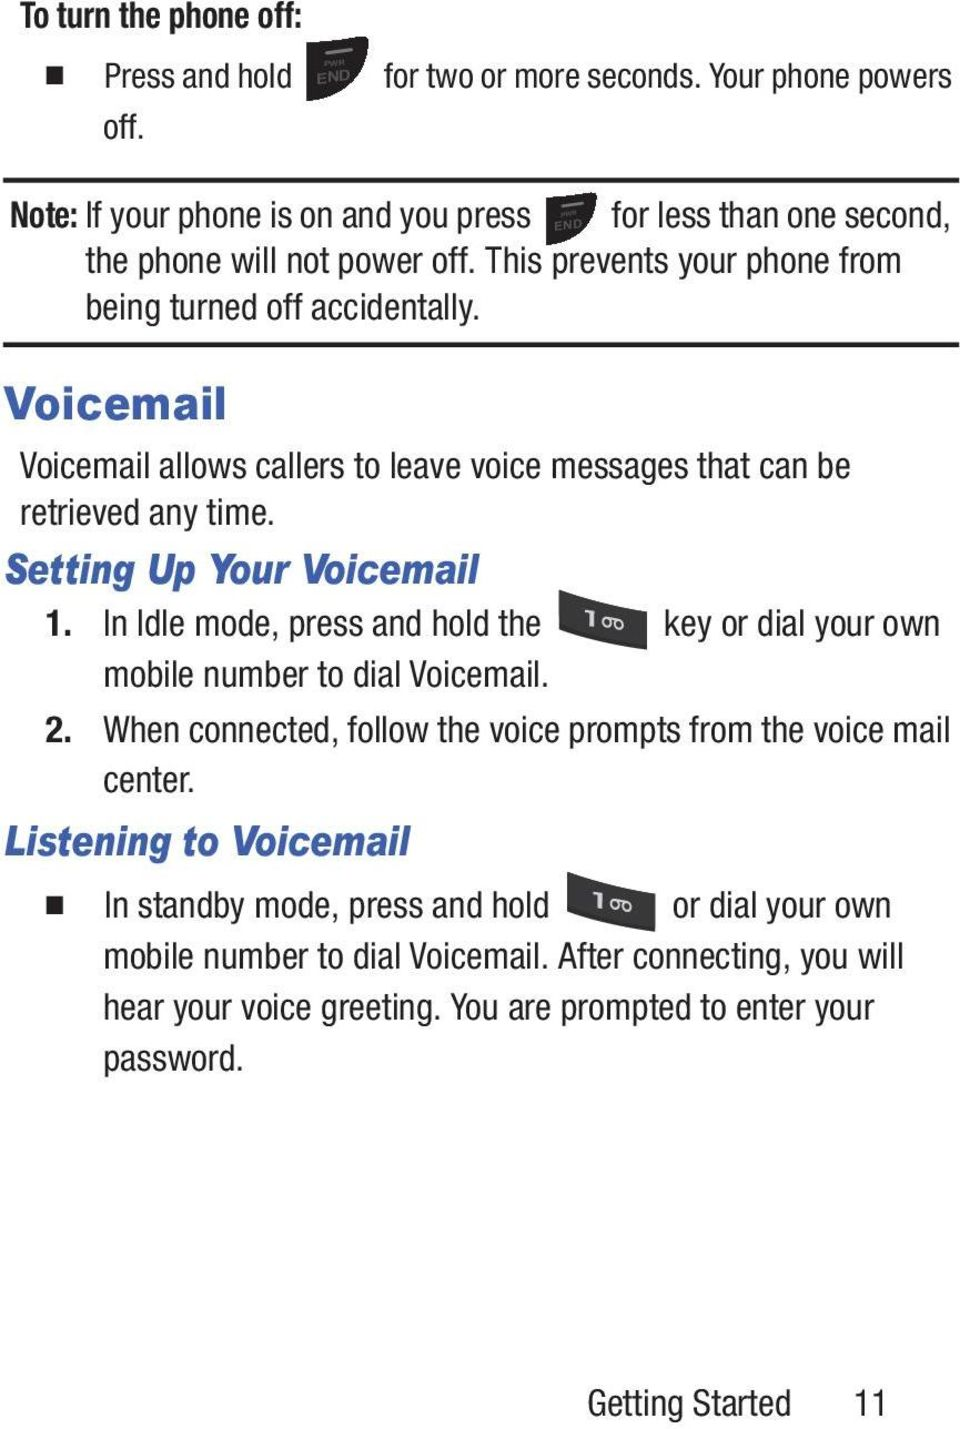 In Idle mode, press and hold the key or dial your own mobile number to dial Voicemail. 2. When connected, follow the voice prompts from the voice mail center.